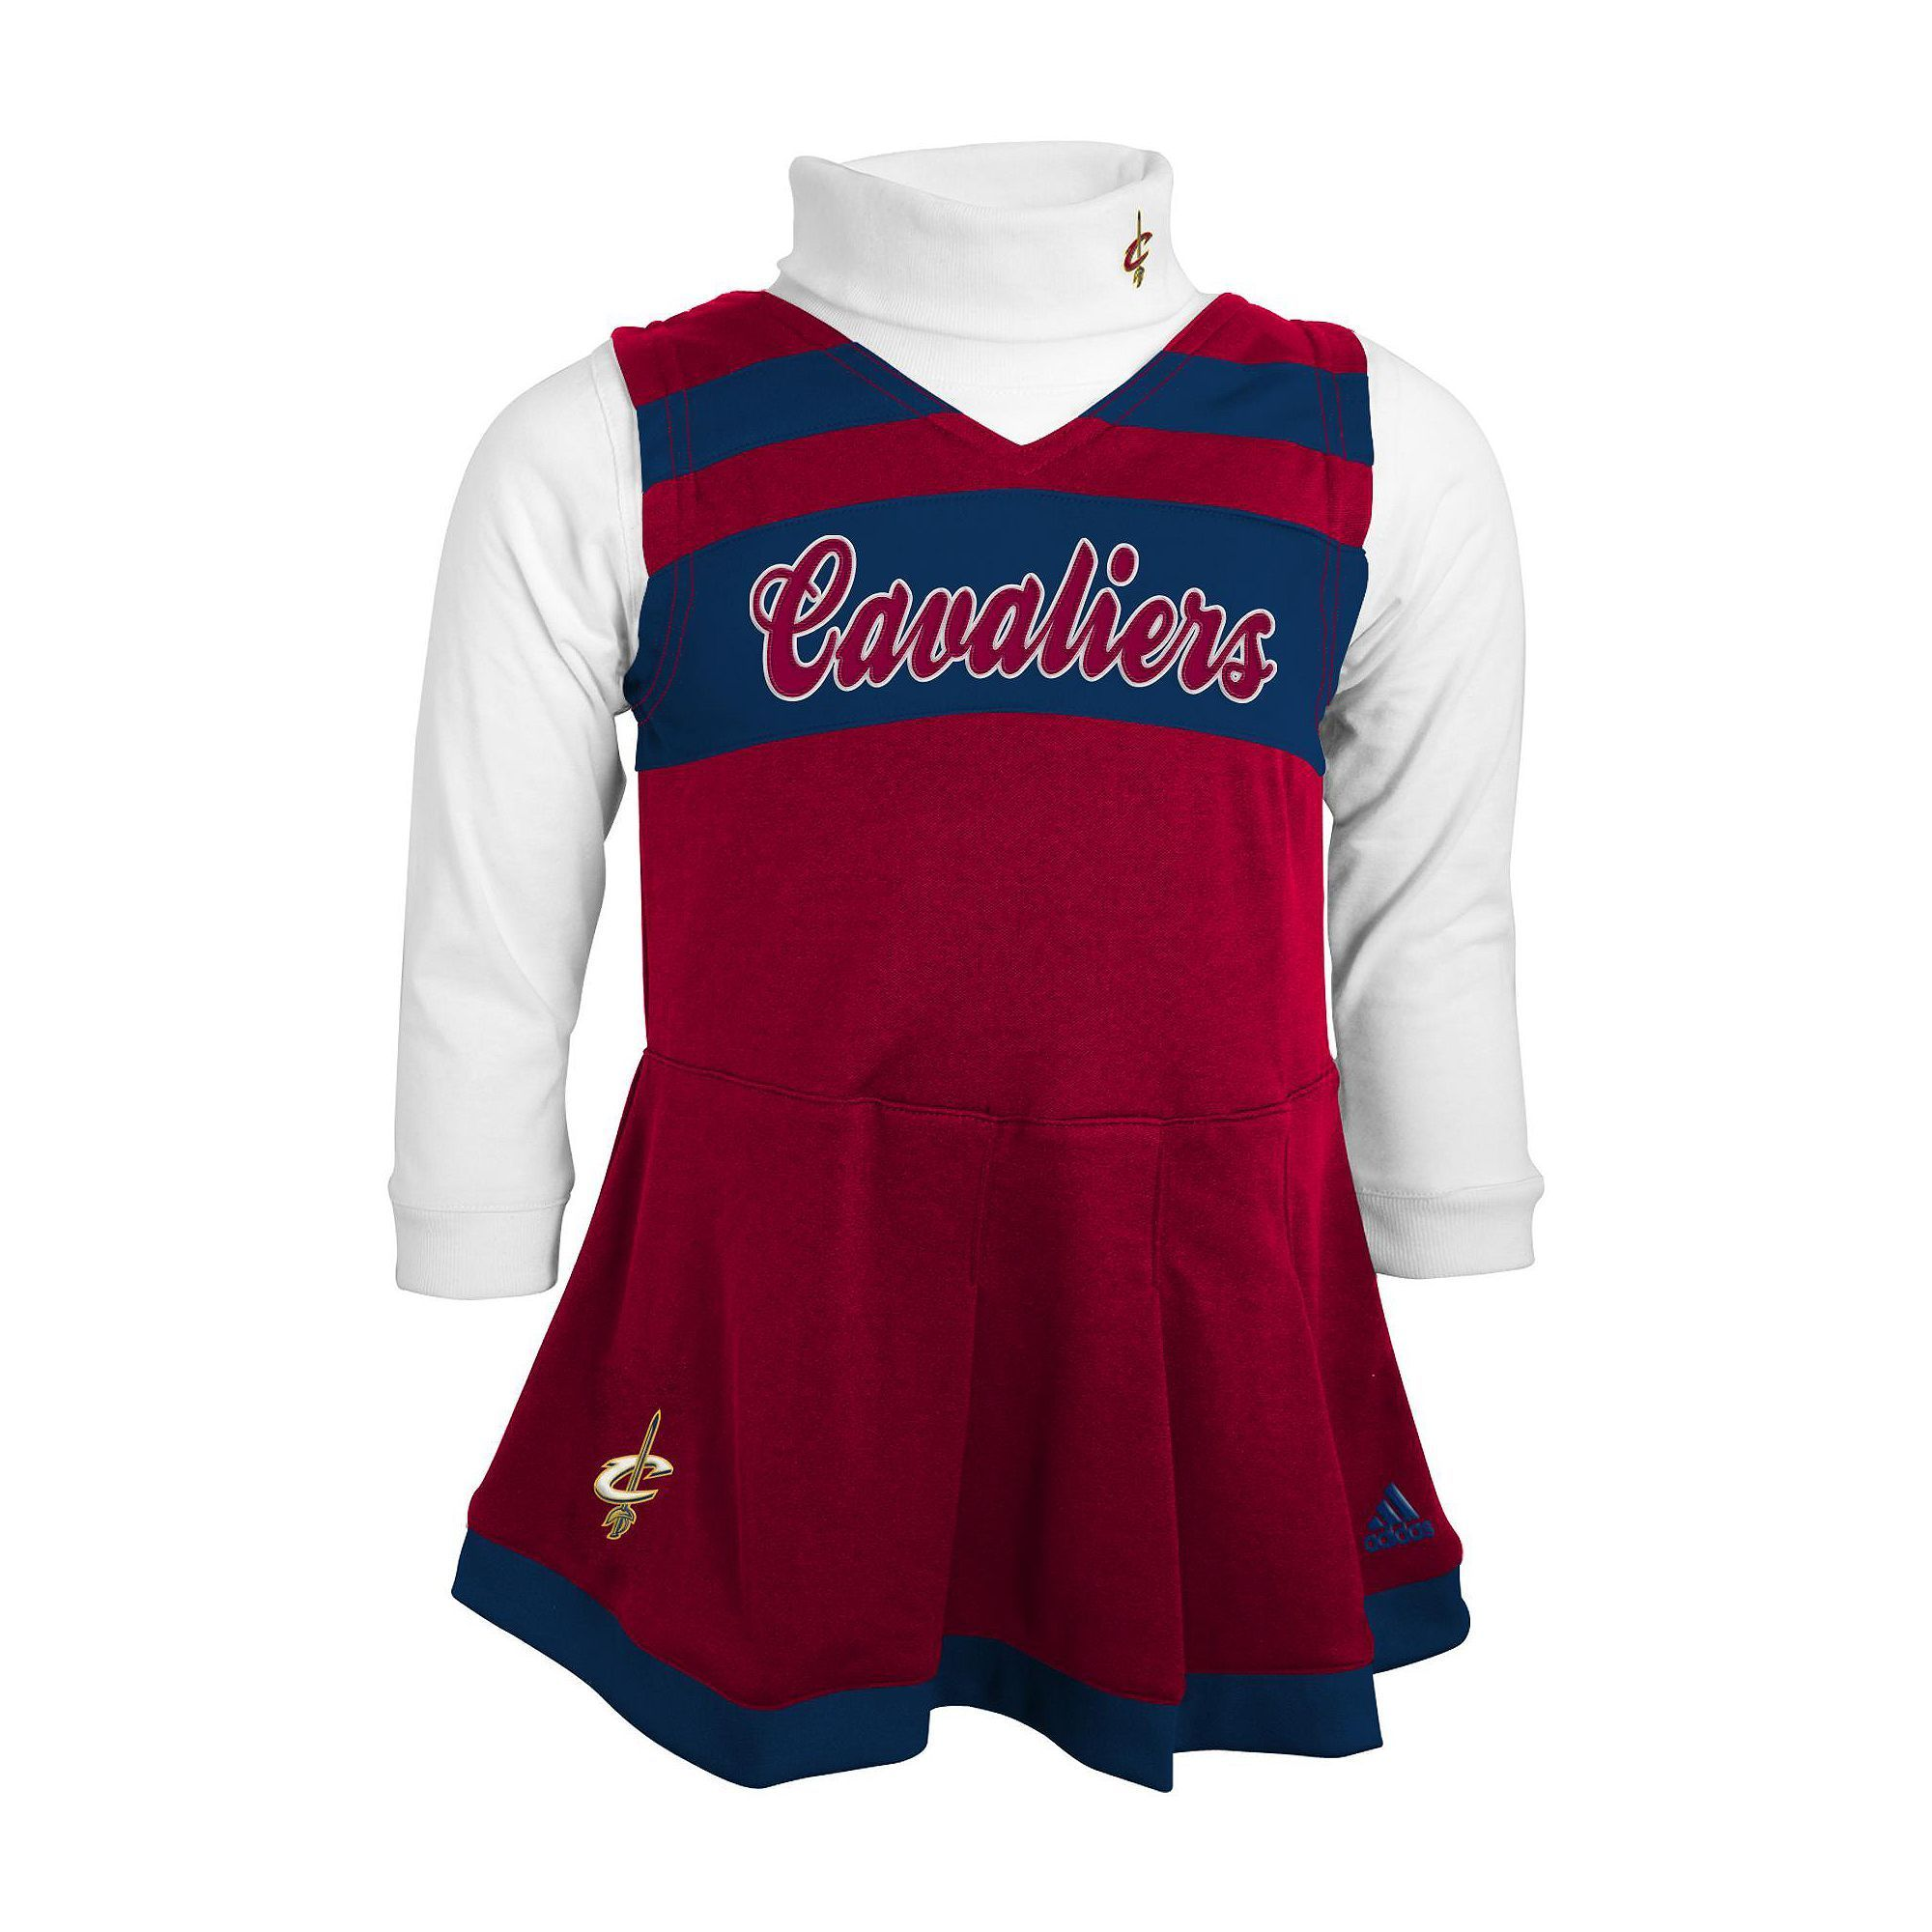 5a7a4904 Baby adidas Cleveland Cavaliers Cheer Jumper Dress | Products ...